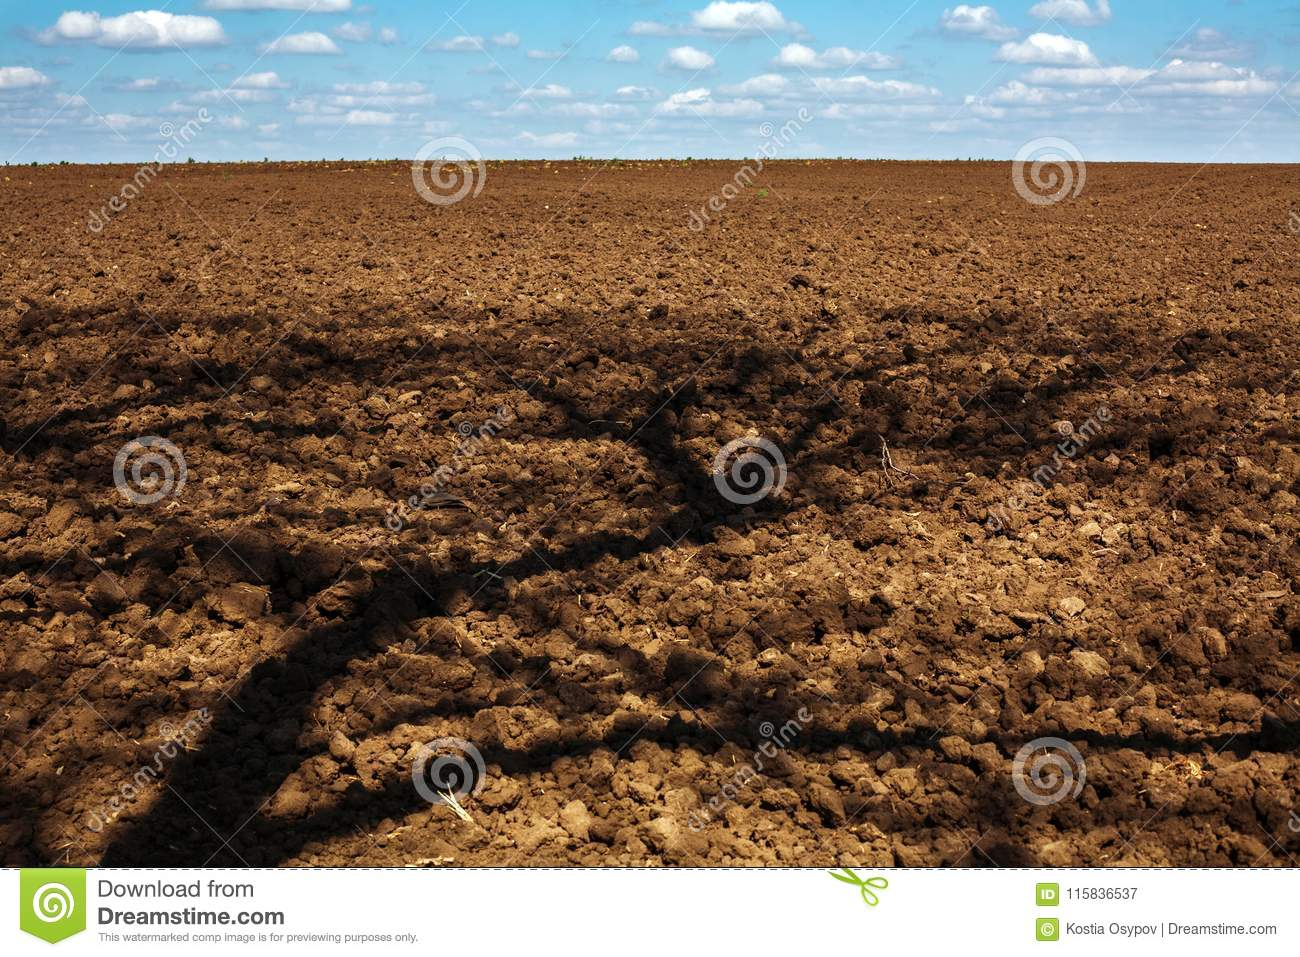 Why dream of plowing the land